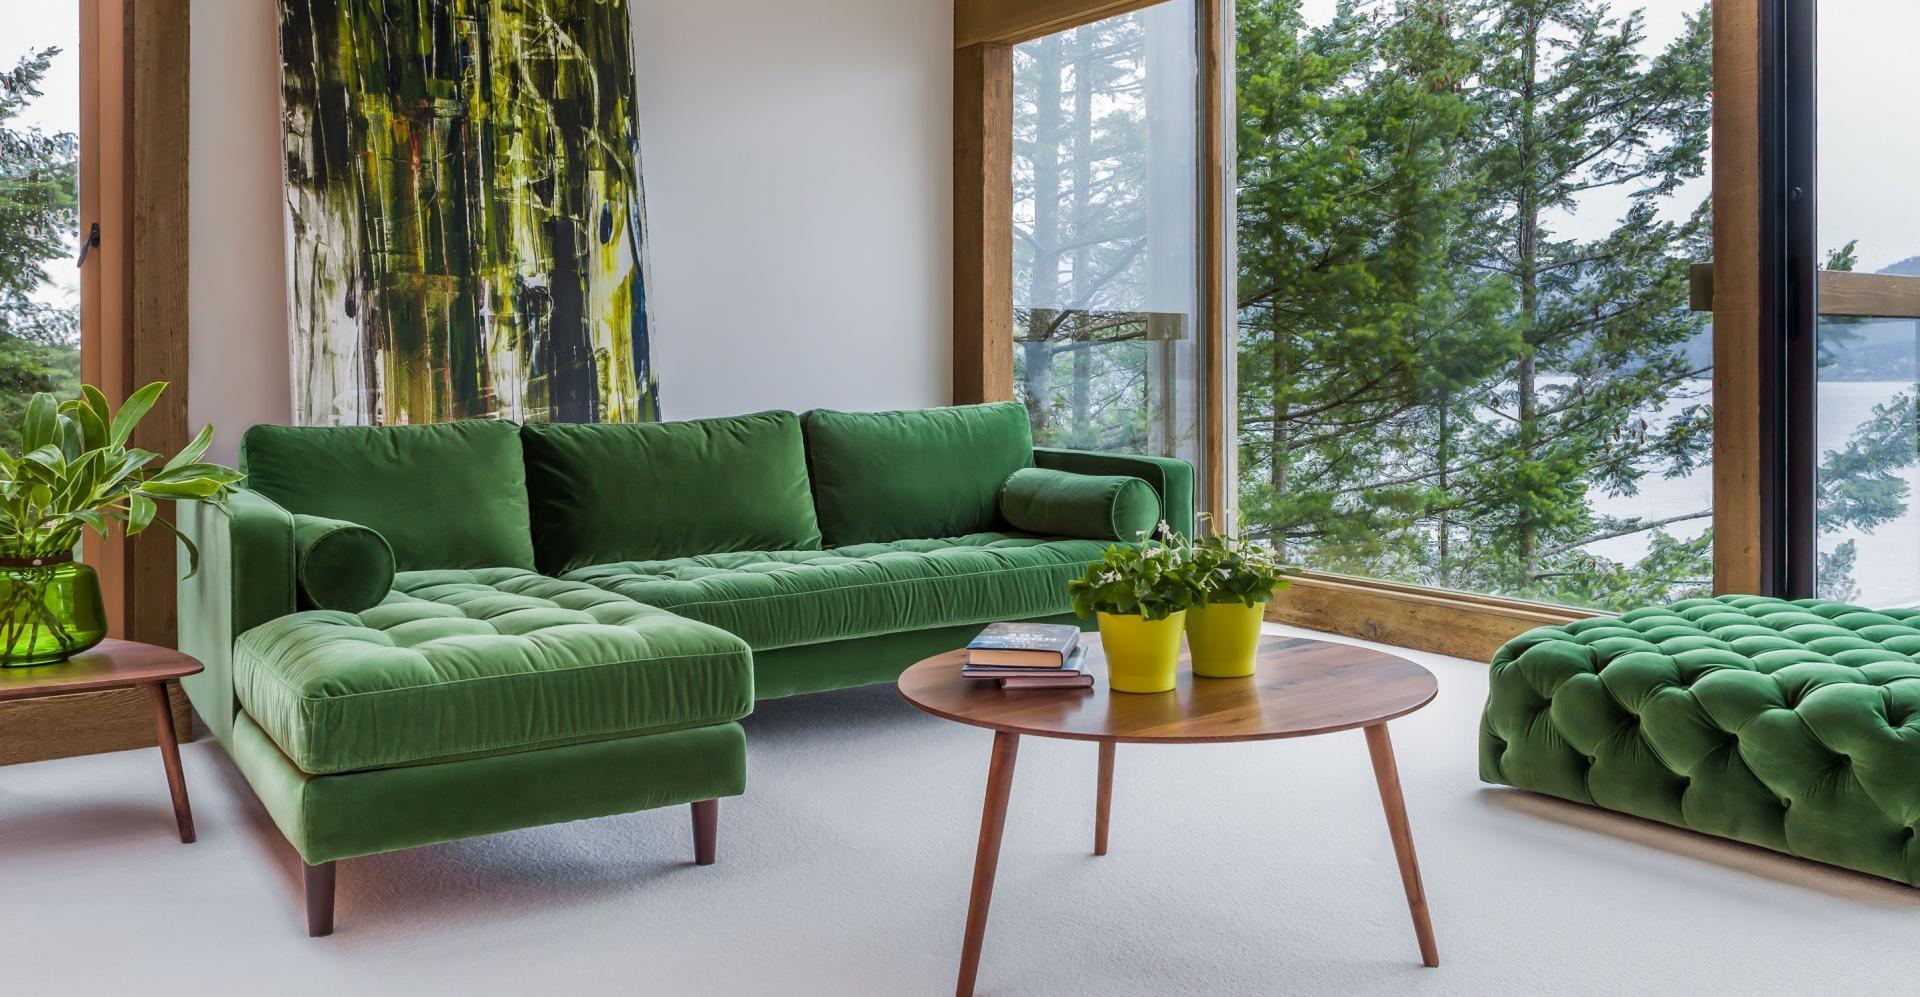 Green Sectional Sofa in Neutral and Wood Living Room